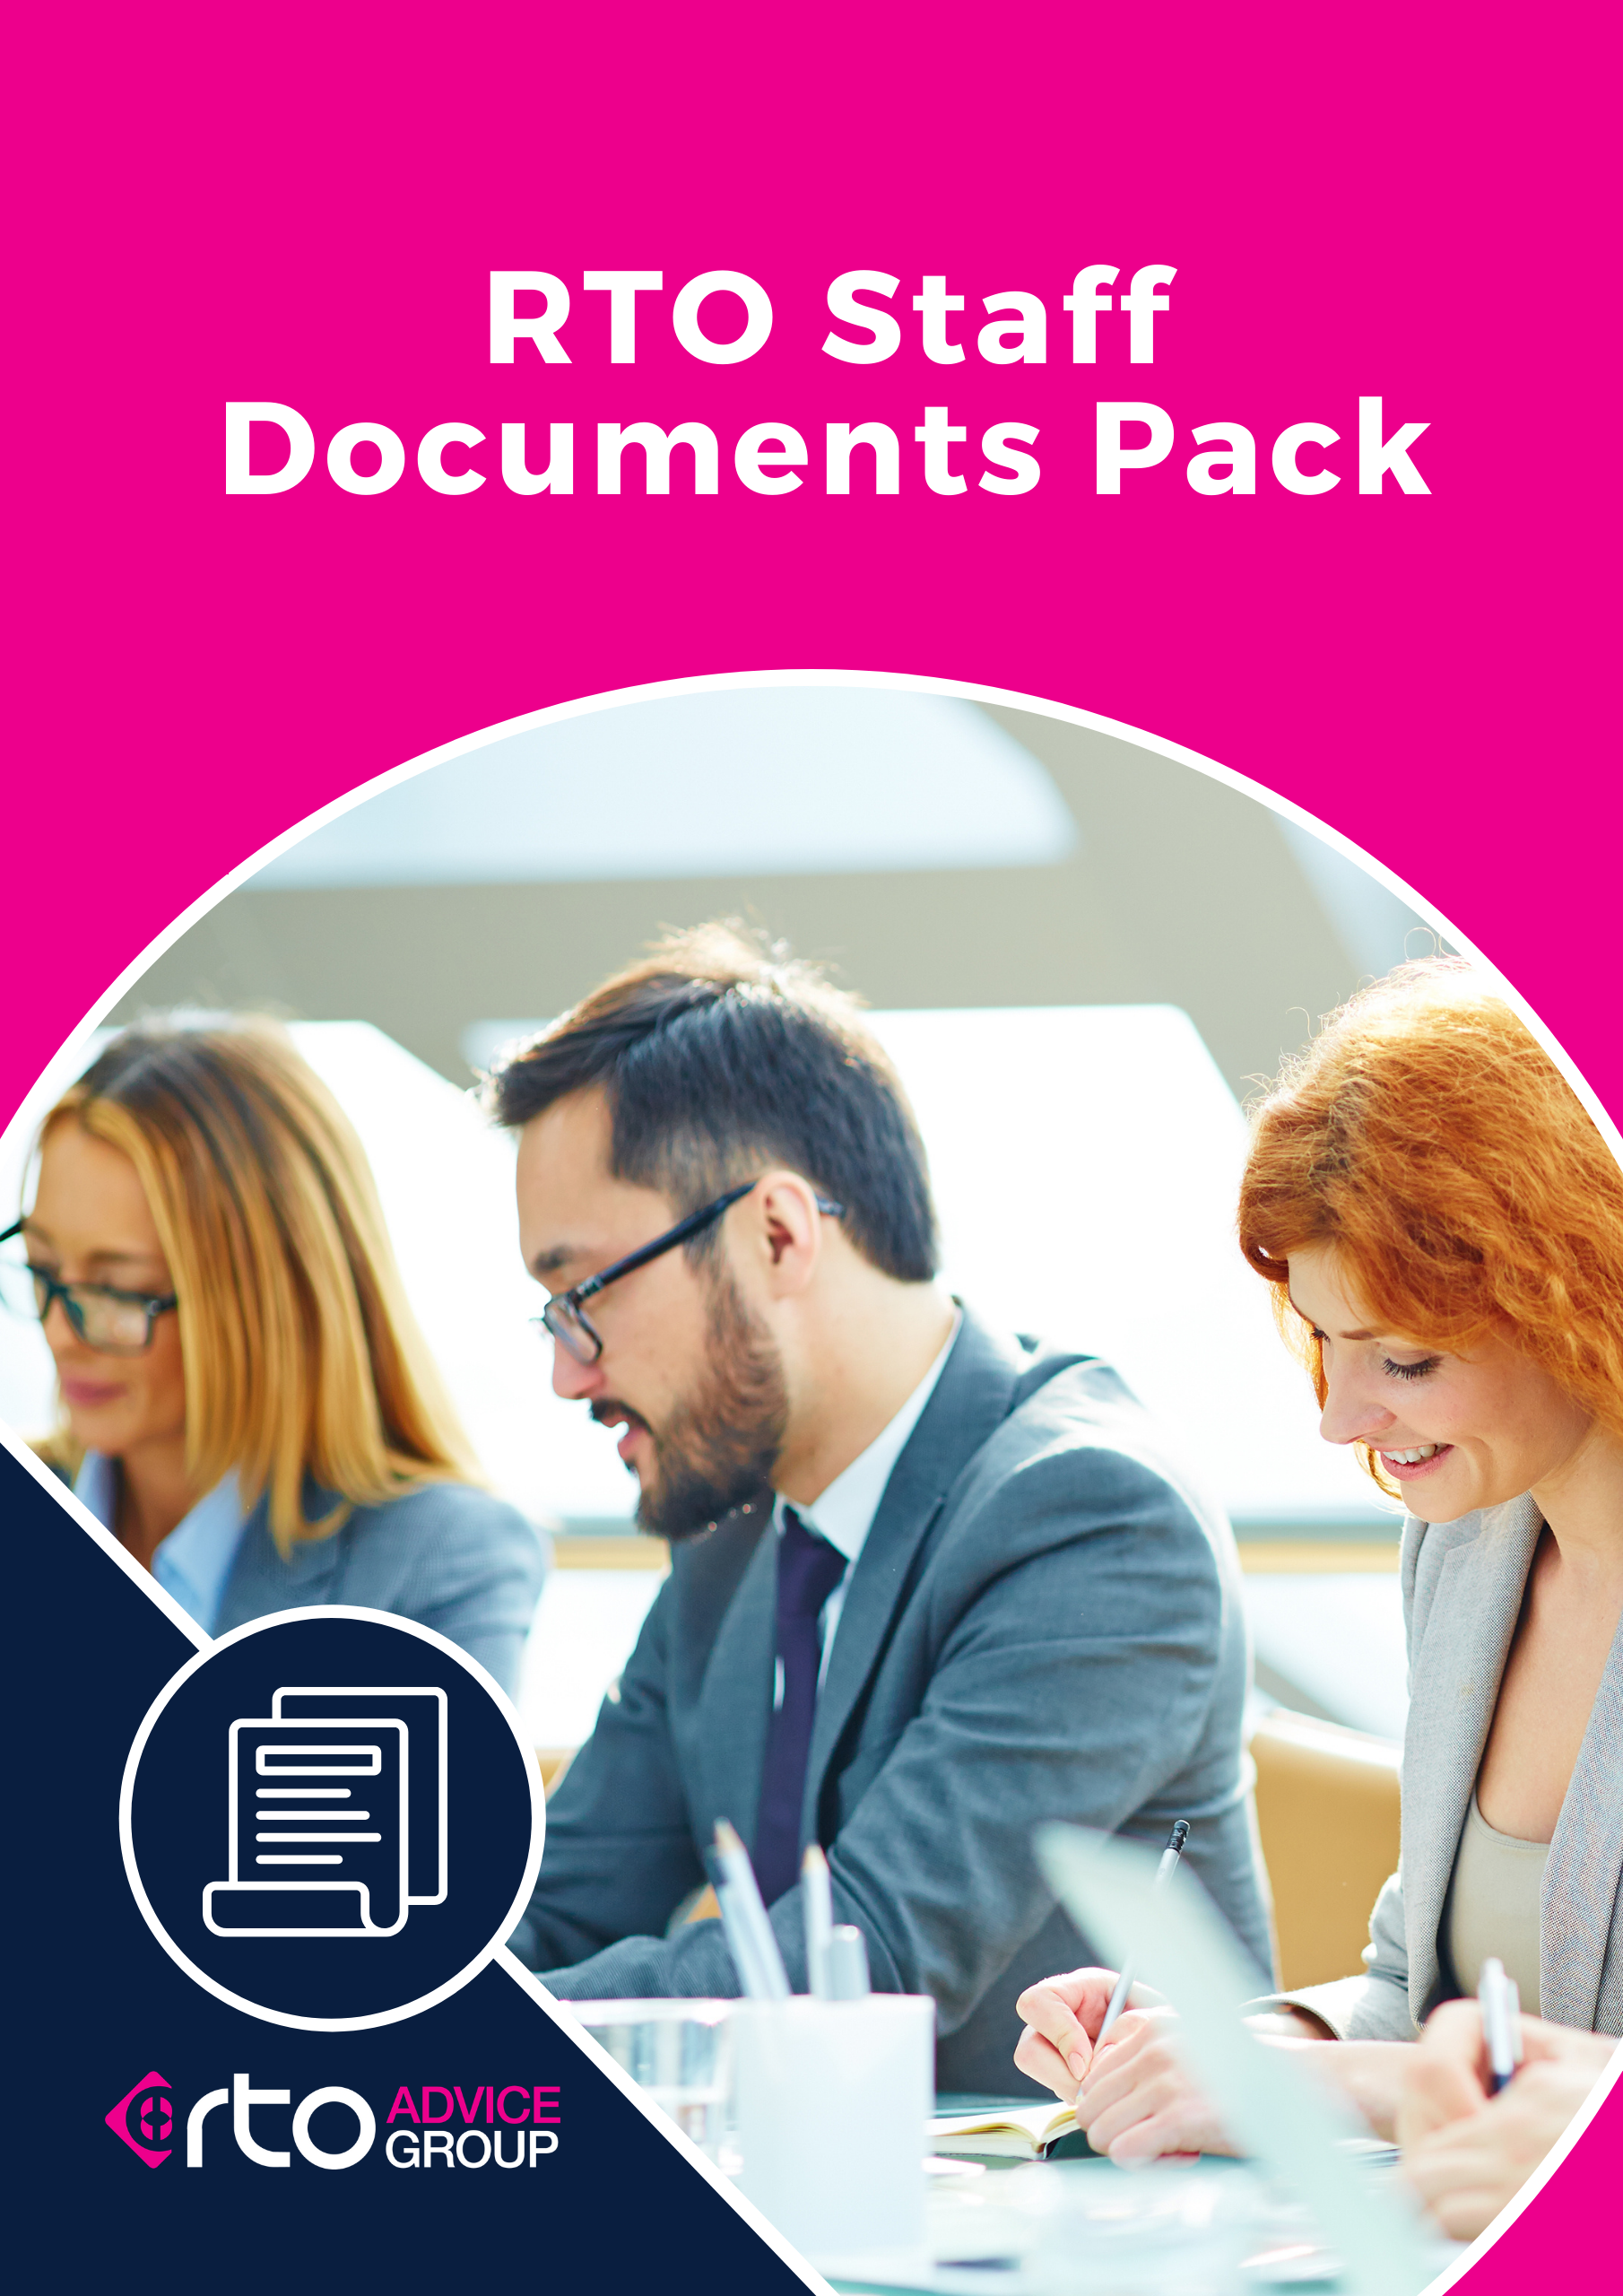 RTO Staff Documents Pack